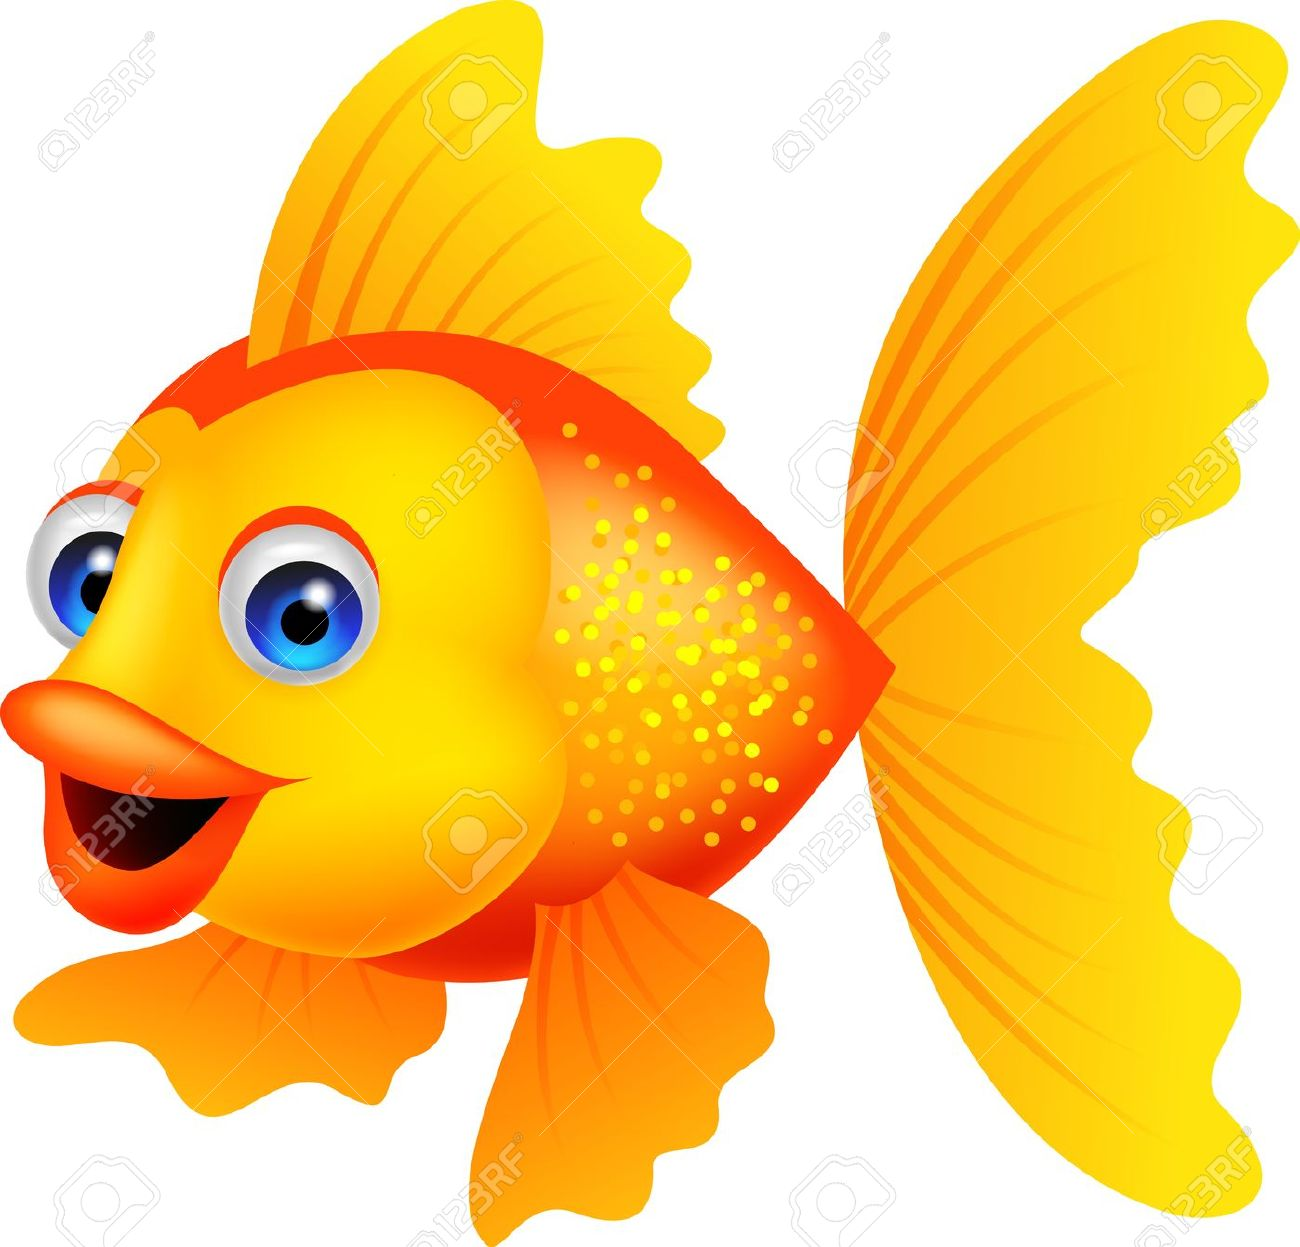 Gold Fish clipart #4, Download drawings